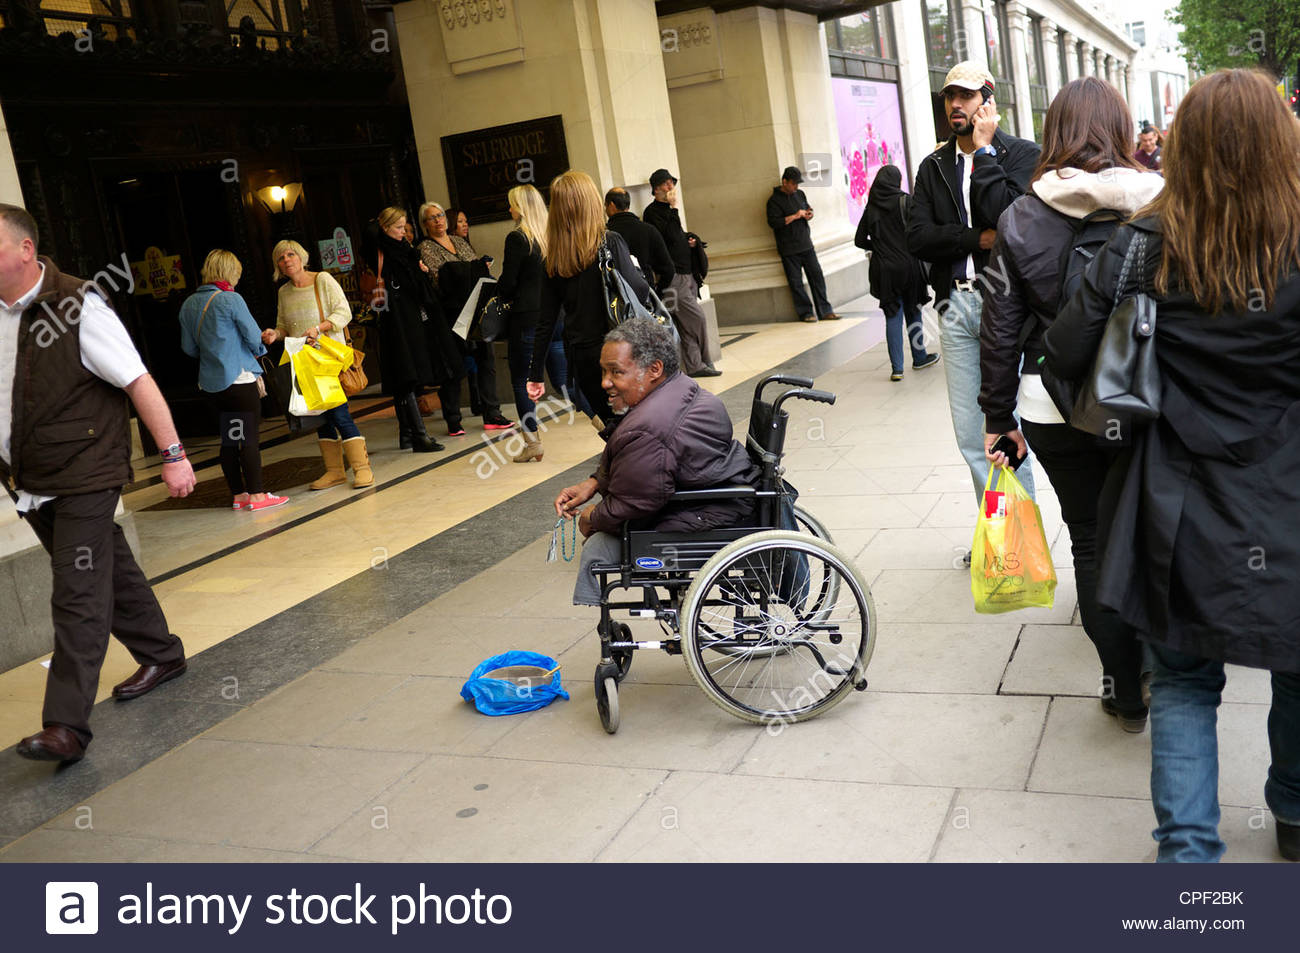 Entrance to the Selfridges store in London's Oxford Street, with a disabled beggar in a wheelchair outside. - Stock Image